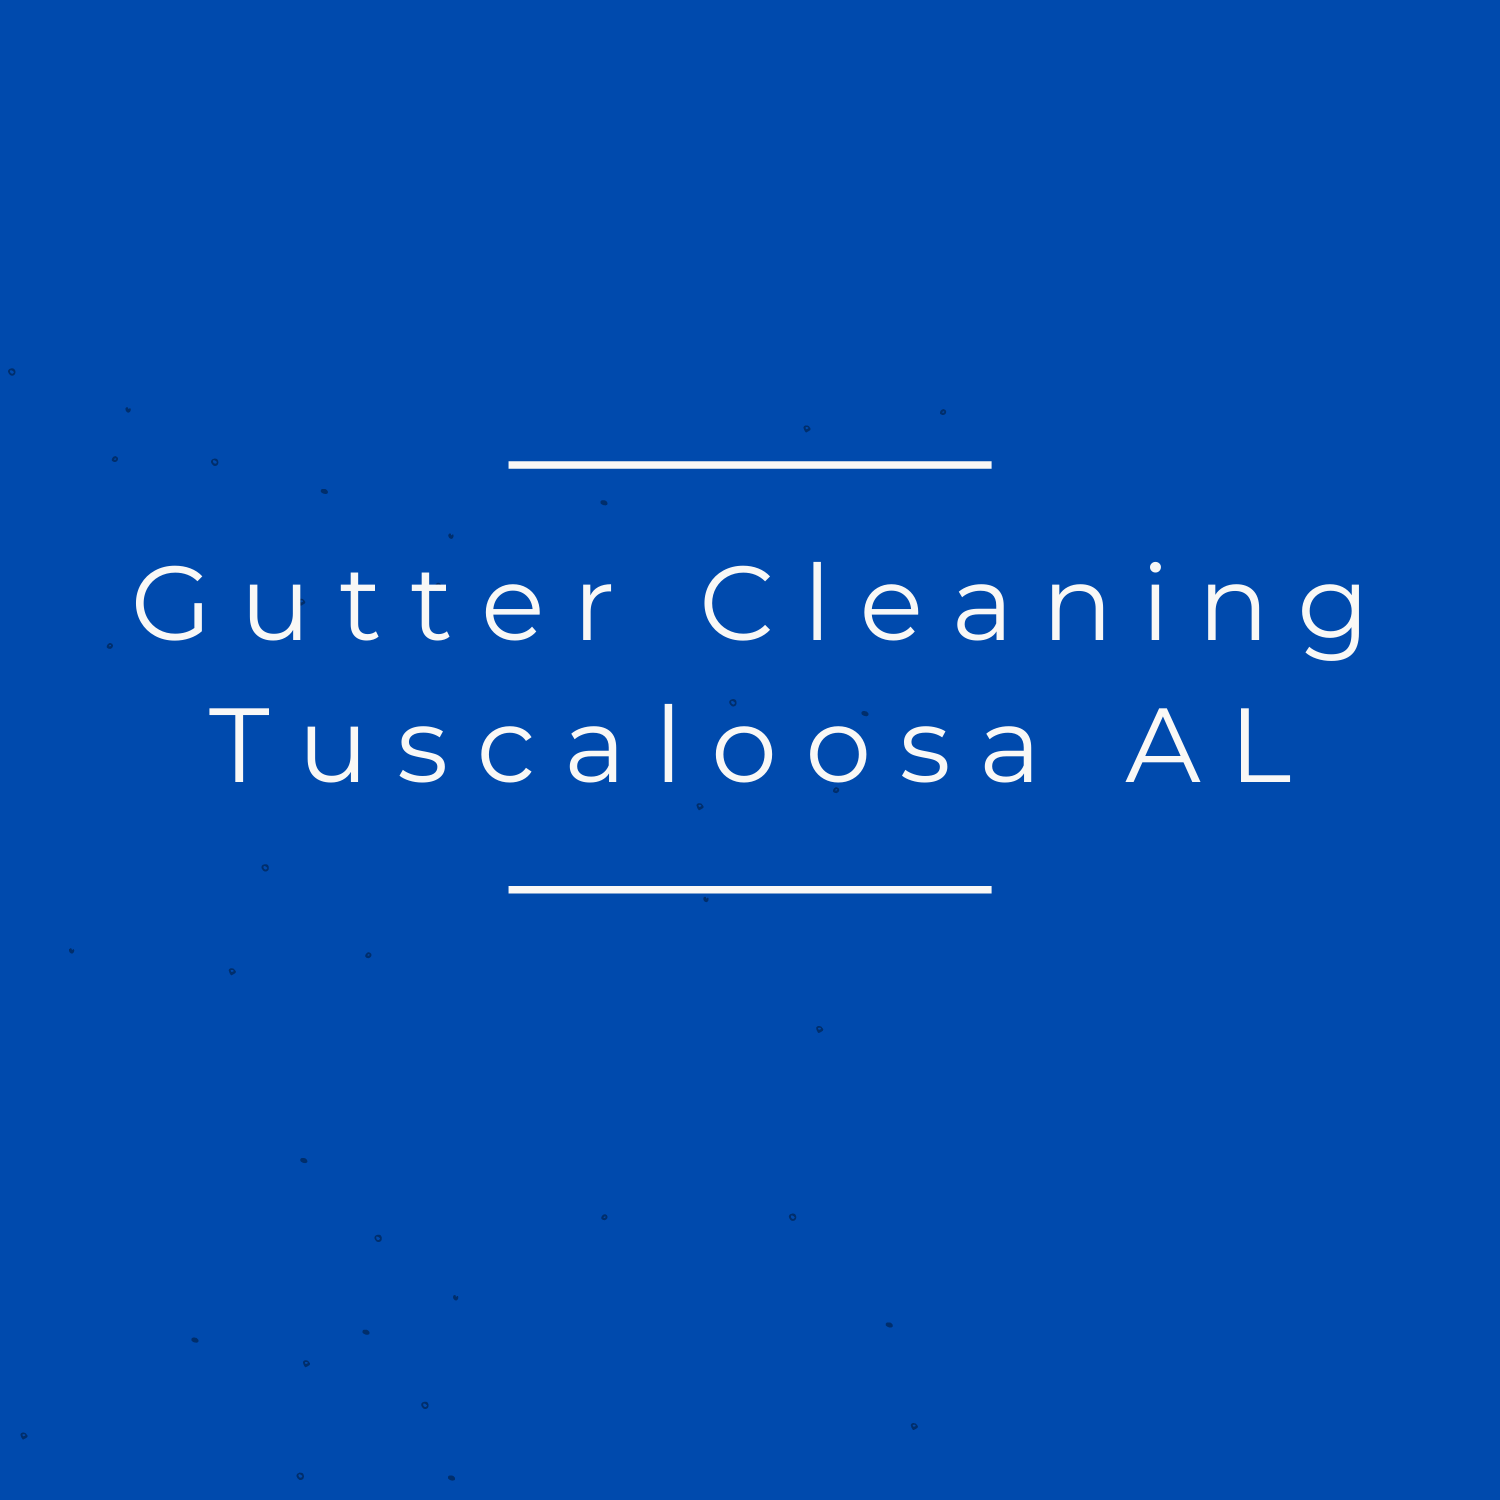 Gutter Cleaning Tuscaloosa